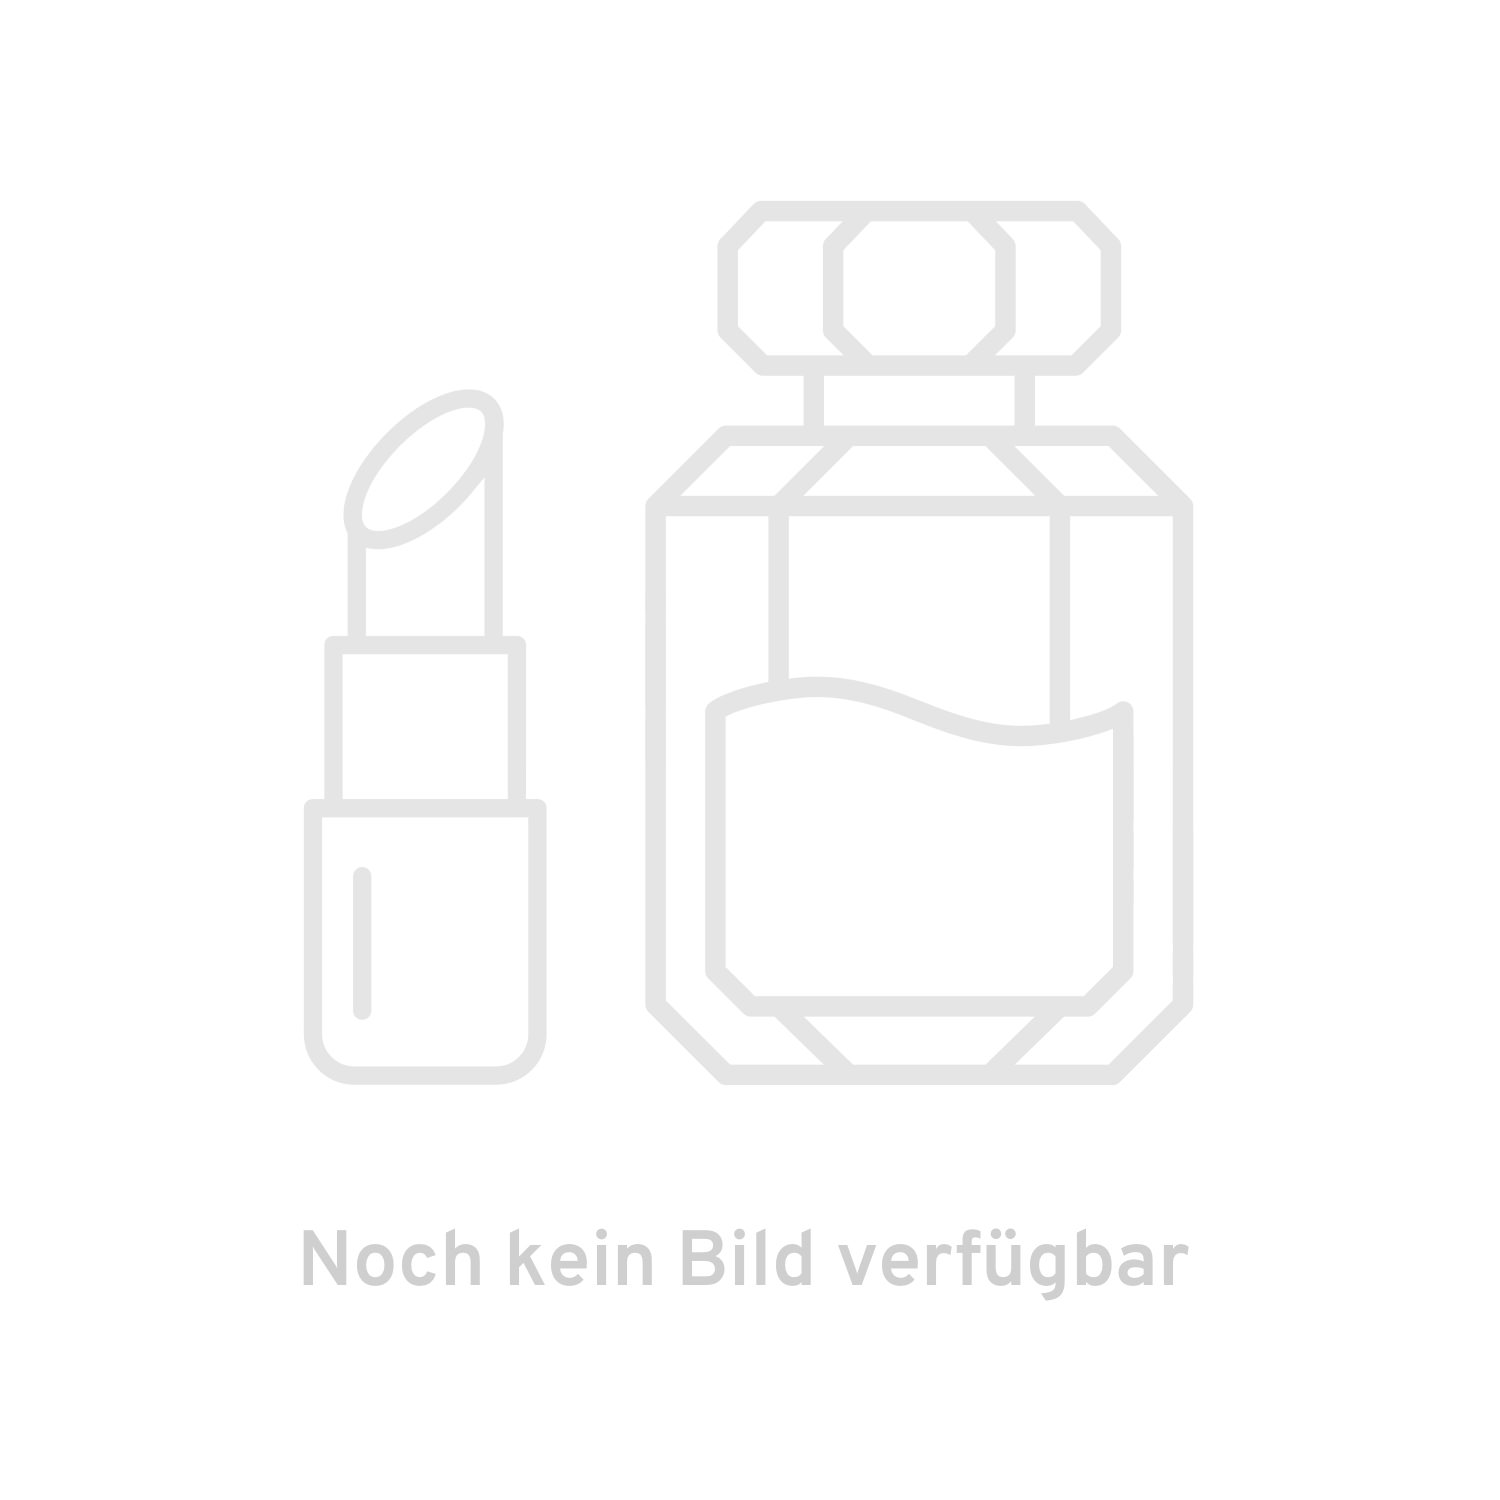 Butterstick Lip Treatment SPF 25 - Nude